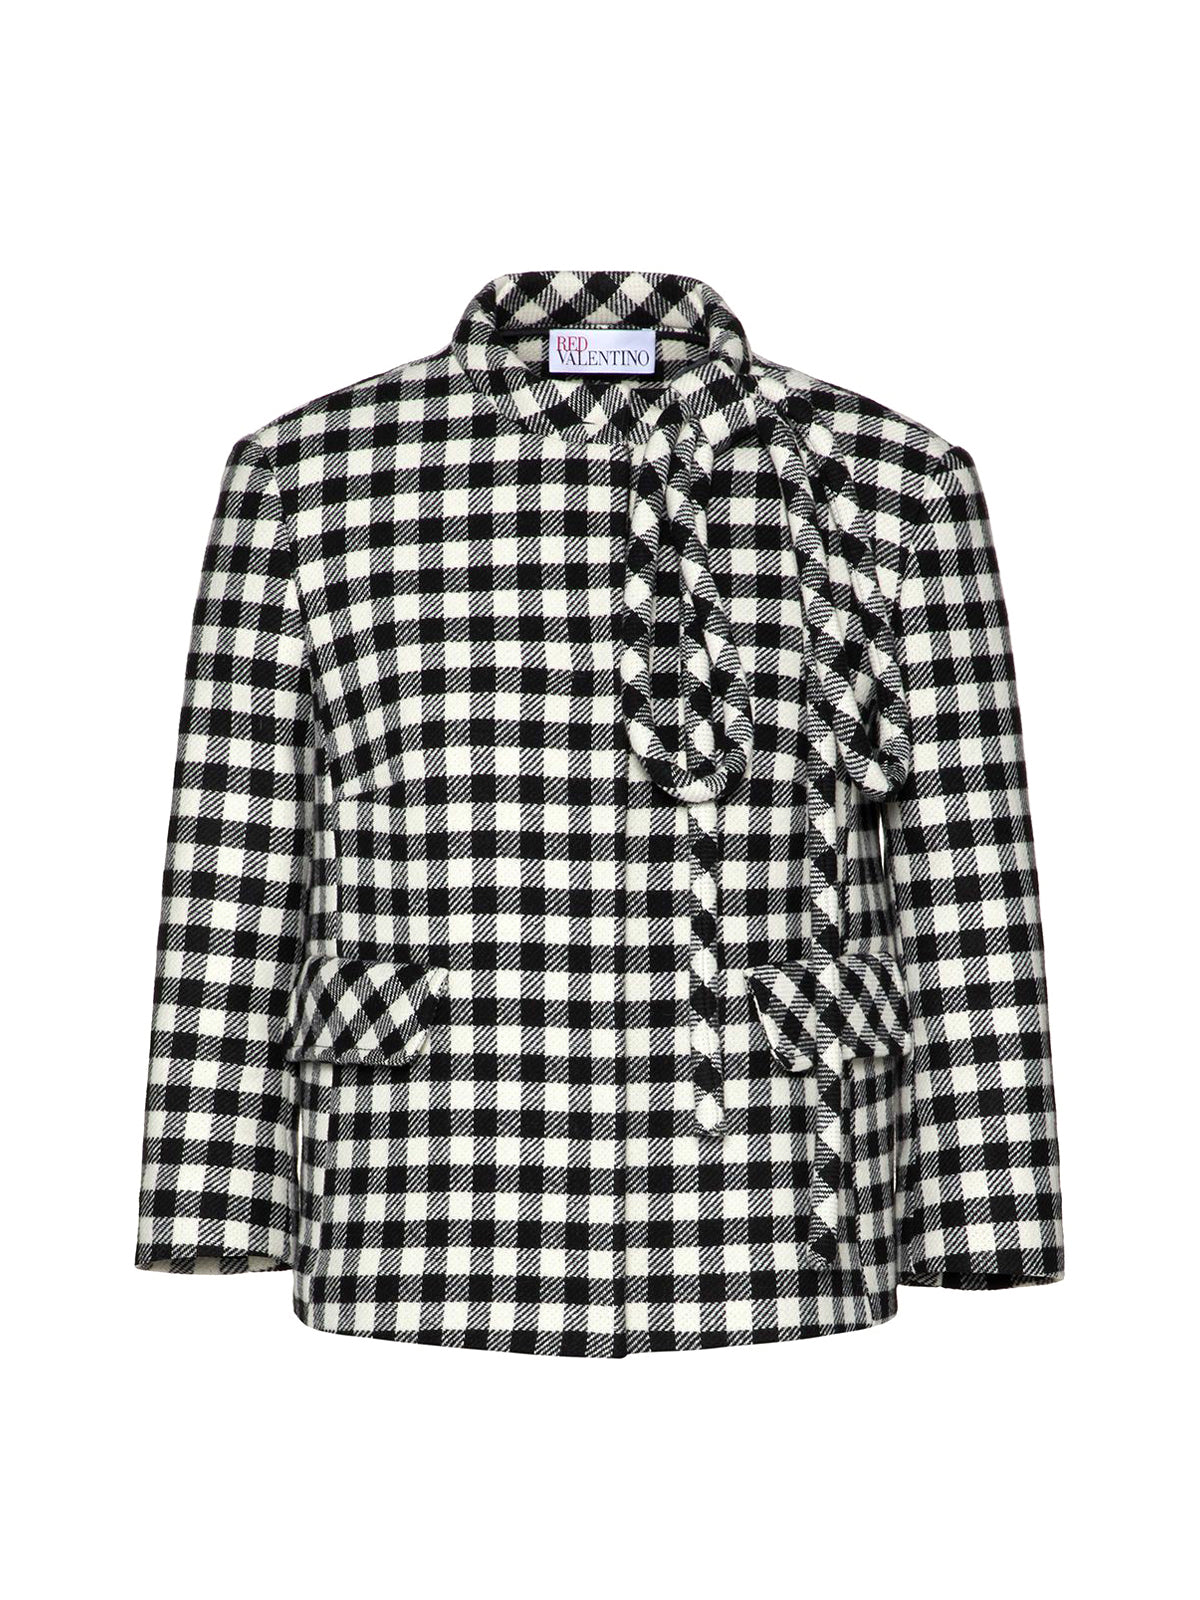 gingham-check cropped jacket